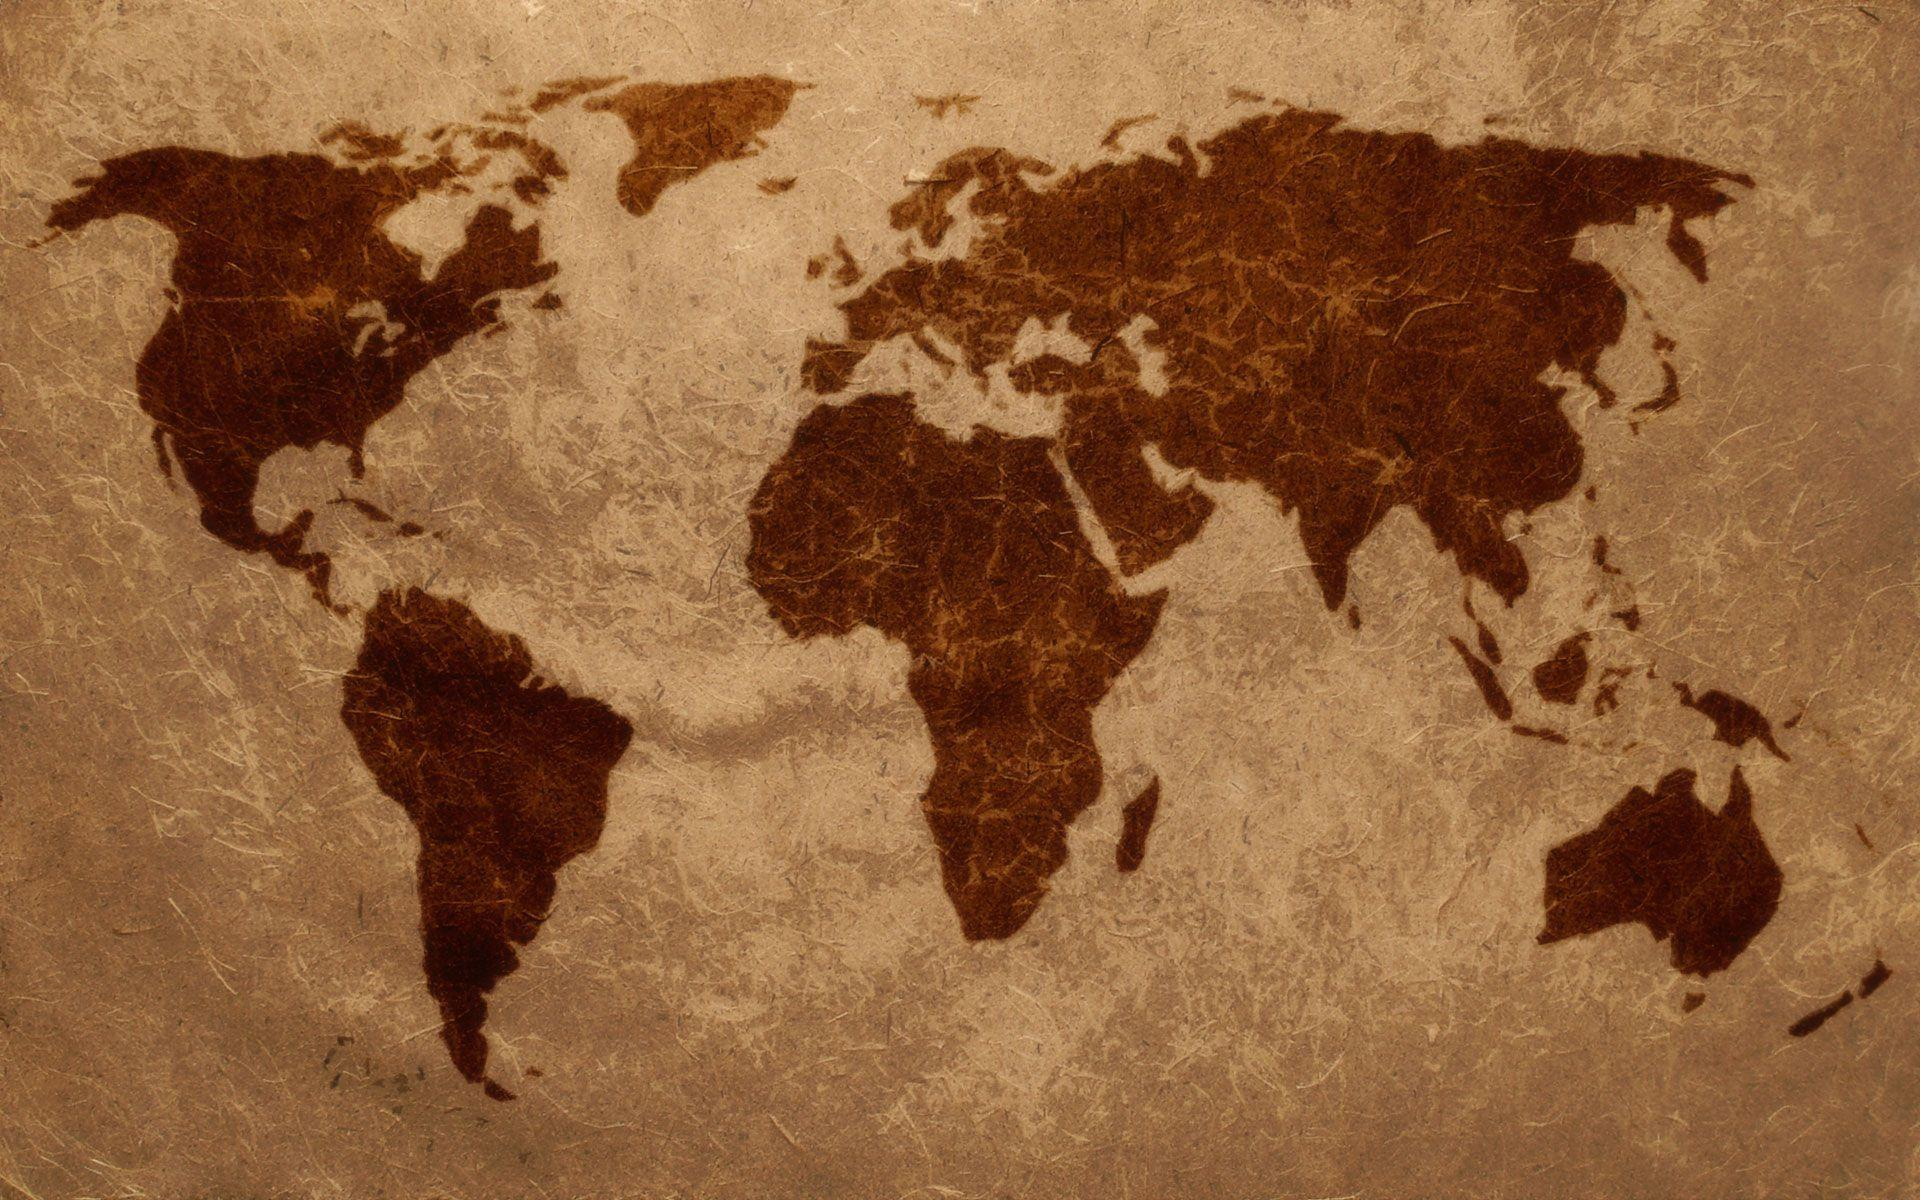 World map wallpapers wallpaper cave most downloaded old map wallpapers full hd wallpaper search gumiabroncs Gallery